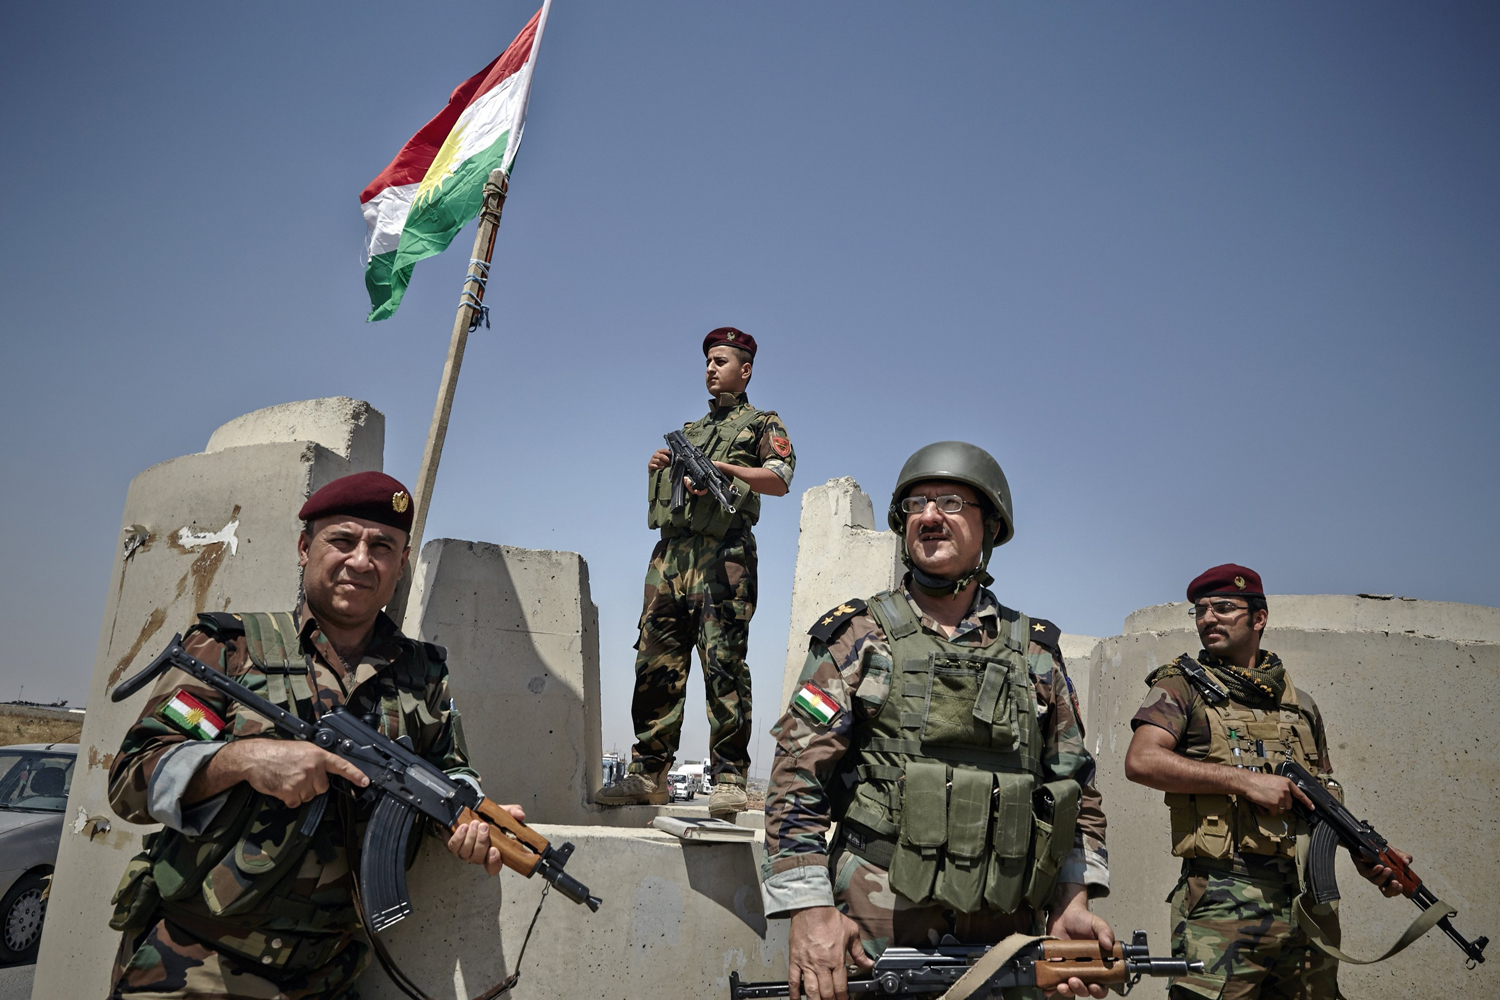 Kurdish Peshmerga fighters provide security at the last checkpoint outside of Mosul on June 14.